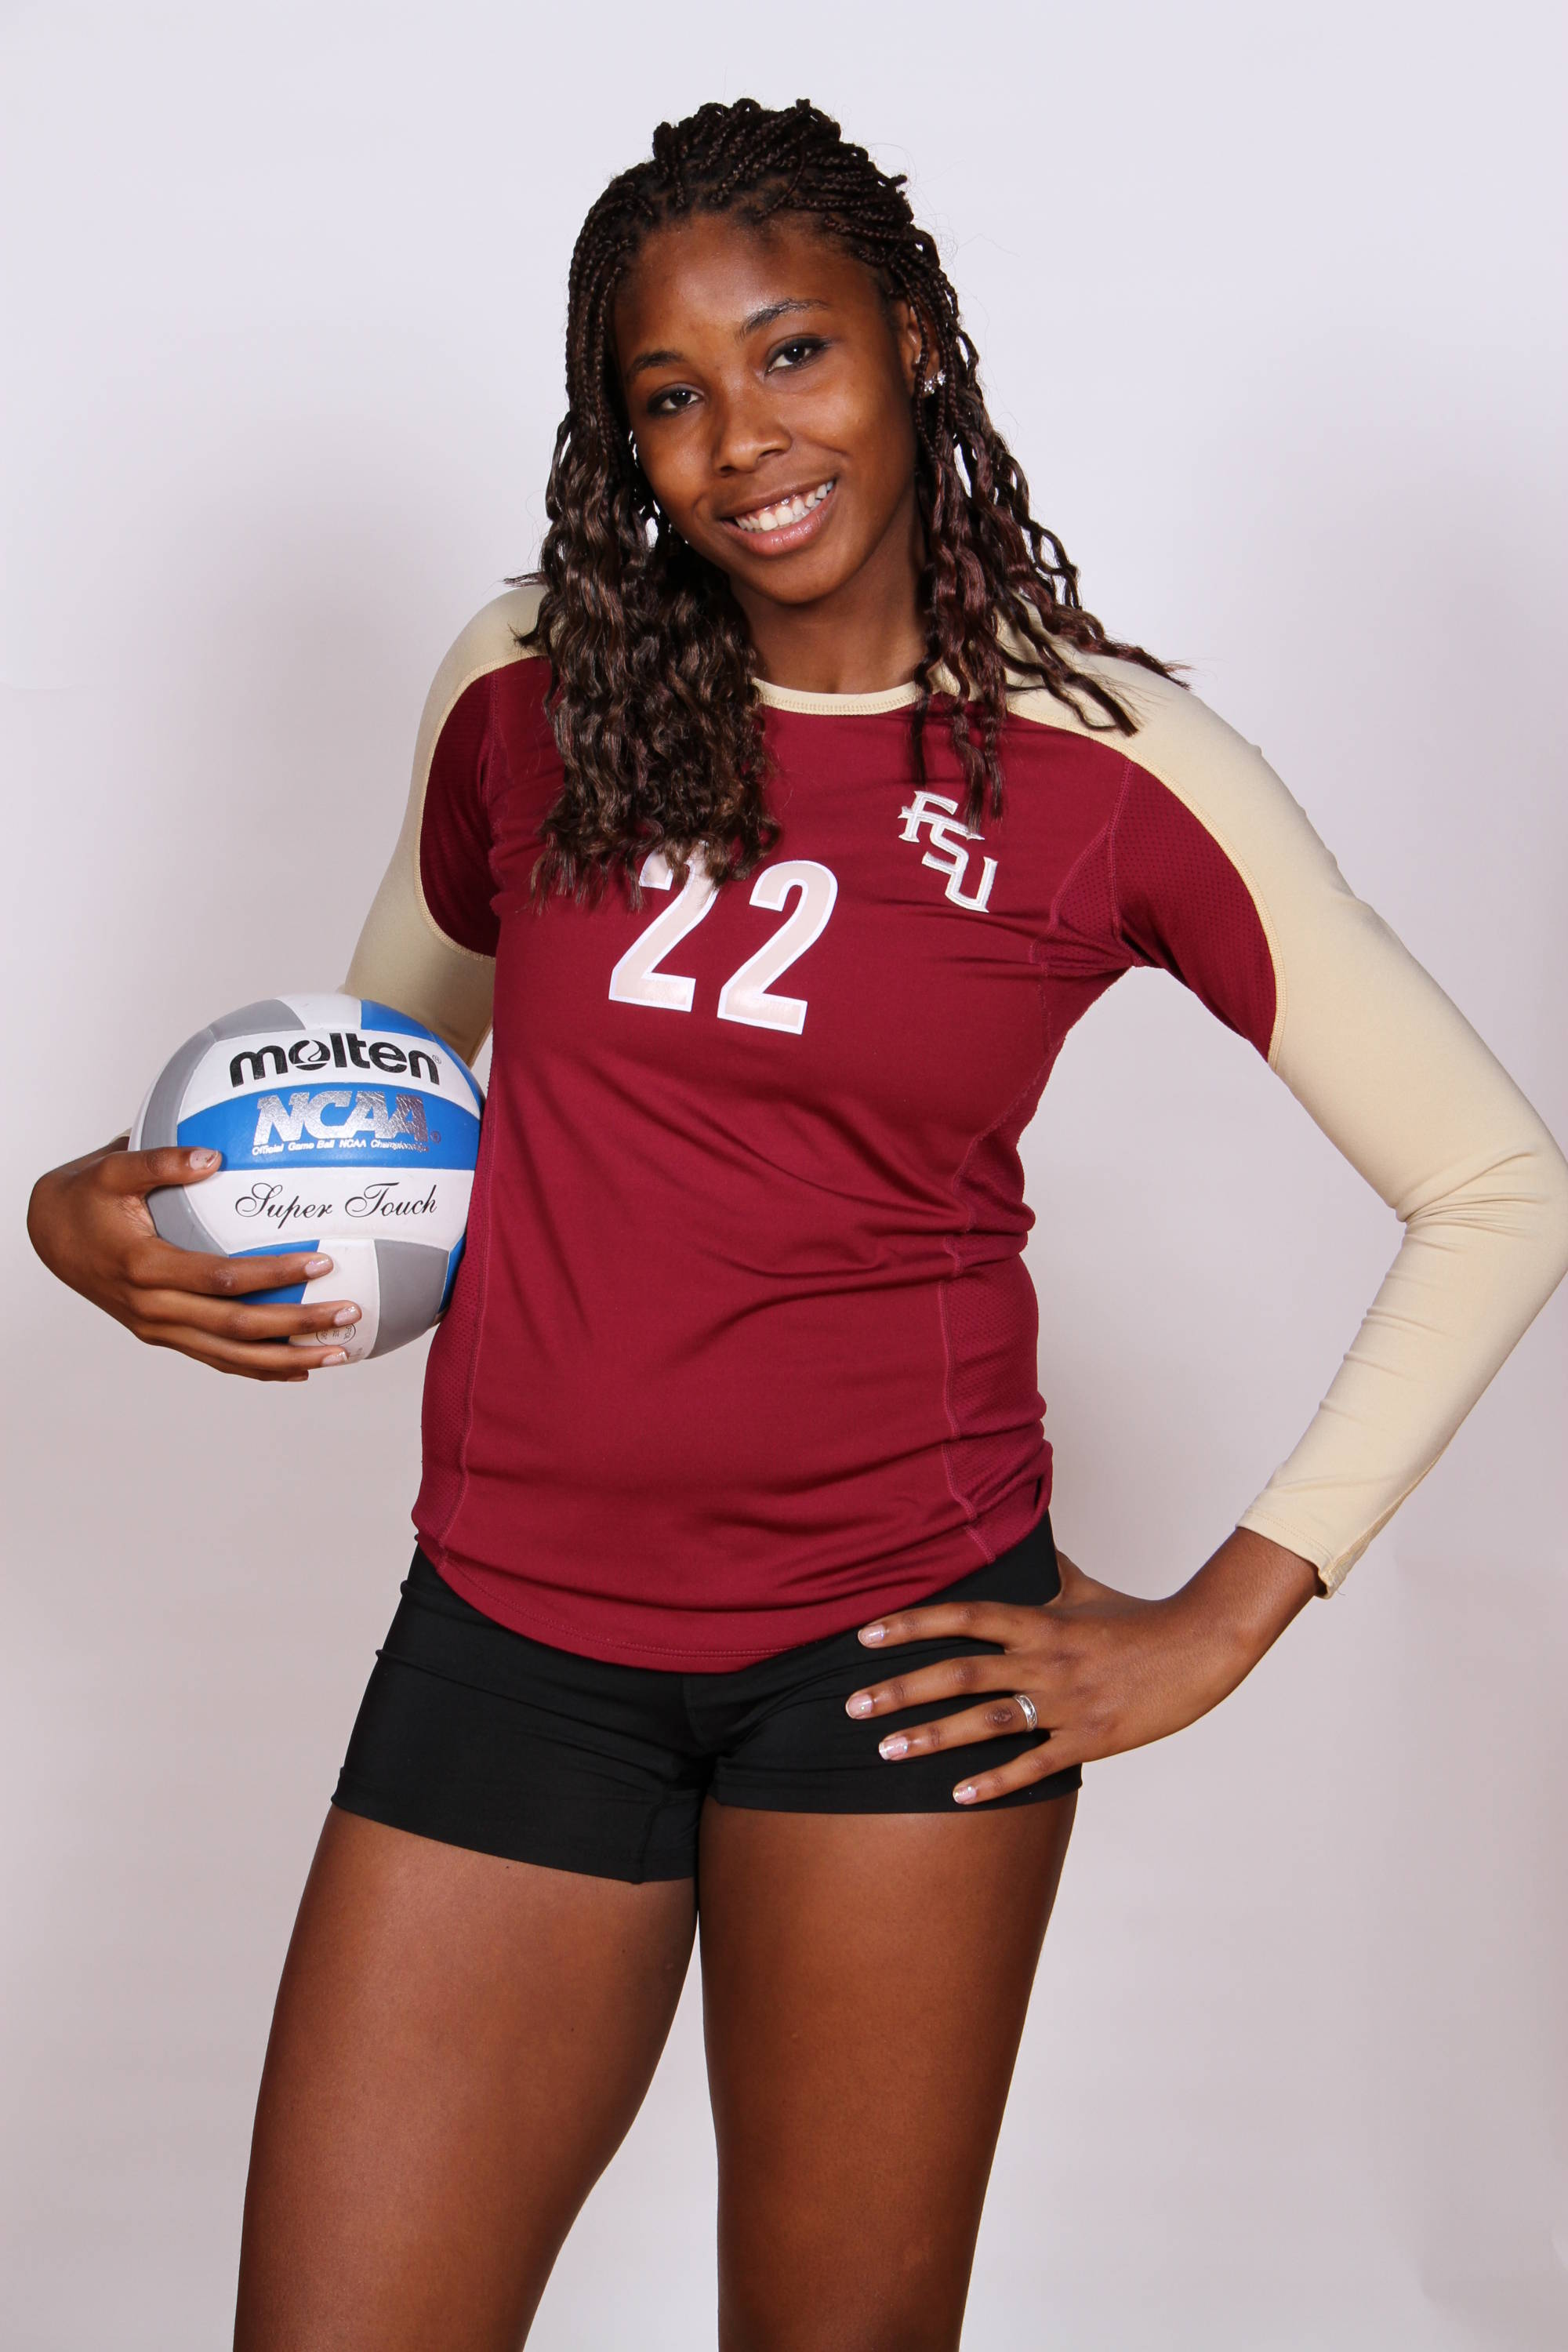 Sareea Freeman has a chance to have a special season at middle blocker